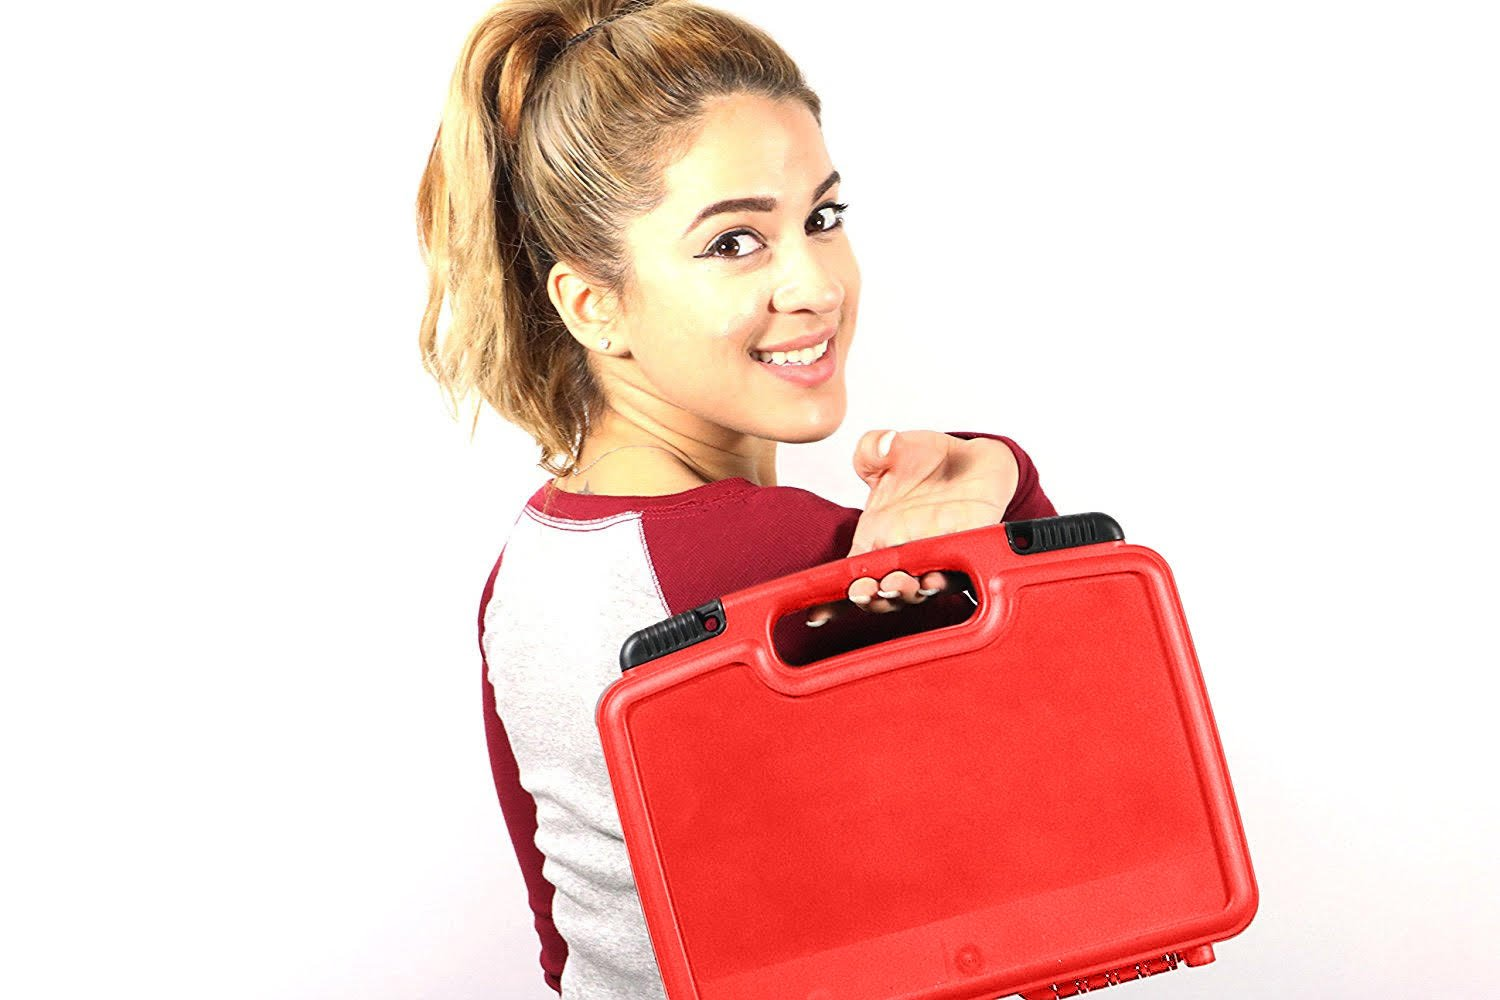 Life Made Better Storage Organizer - Compatible with Tascam DR-05, DR-40, DR-22L, DR-100MKll, DR-44WL Portable Recorder And Accessories- Durable Carrying Case - Red by Life Made Better